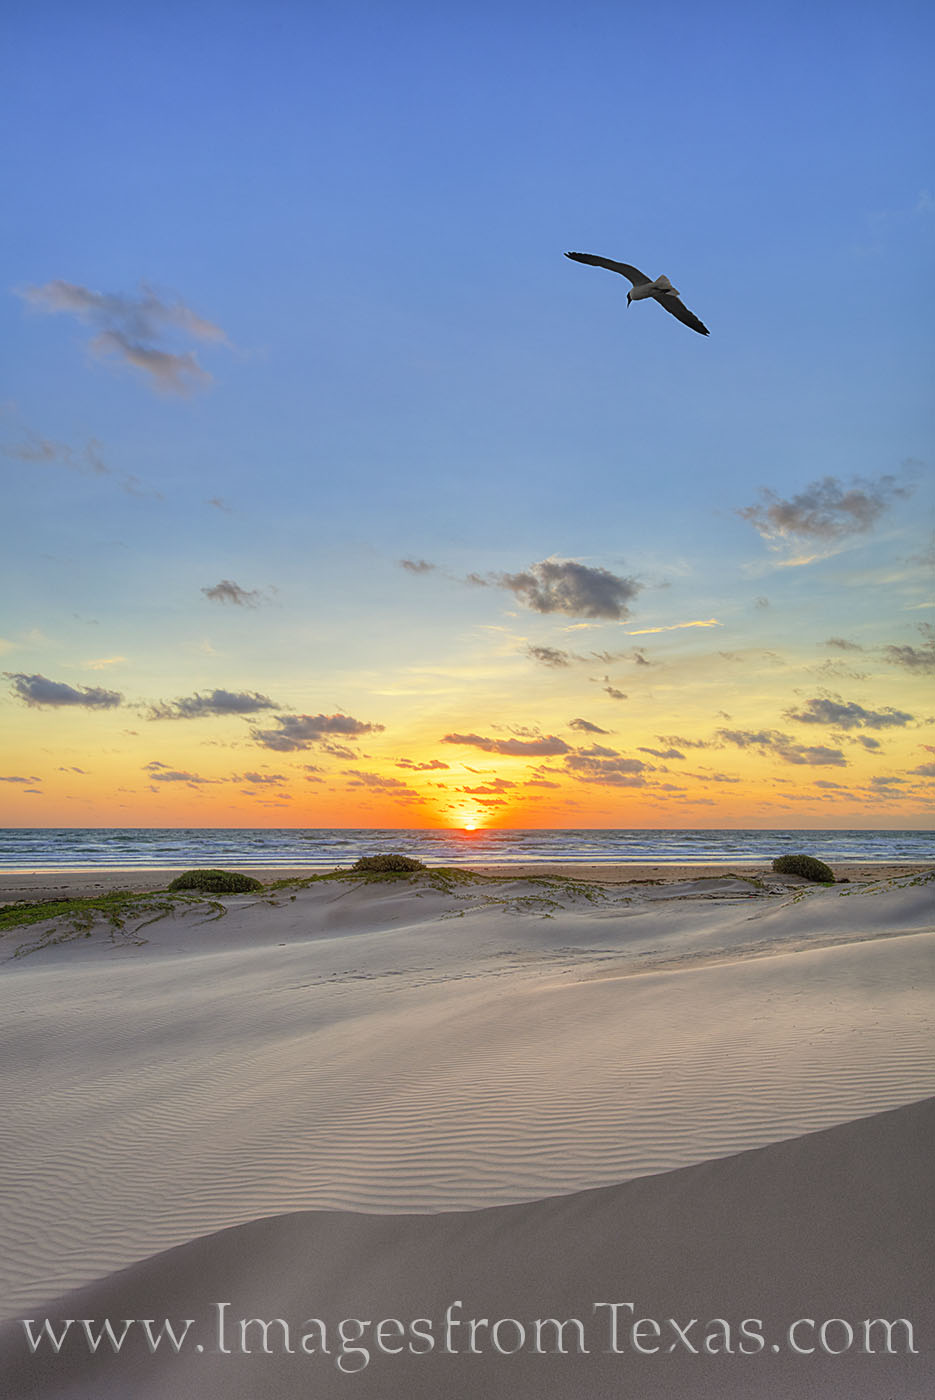 south padre island, seagull, sunrise, beach, sand dunes, orange, sun, morning, island, port isabel, gulf of mexico, ocean, east, photo